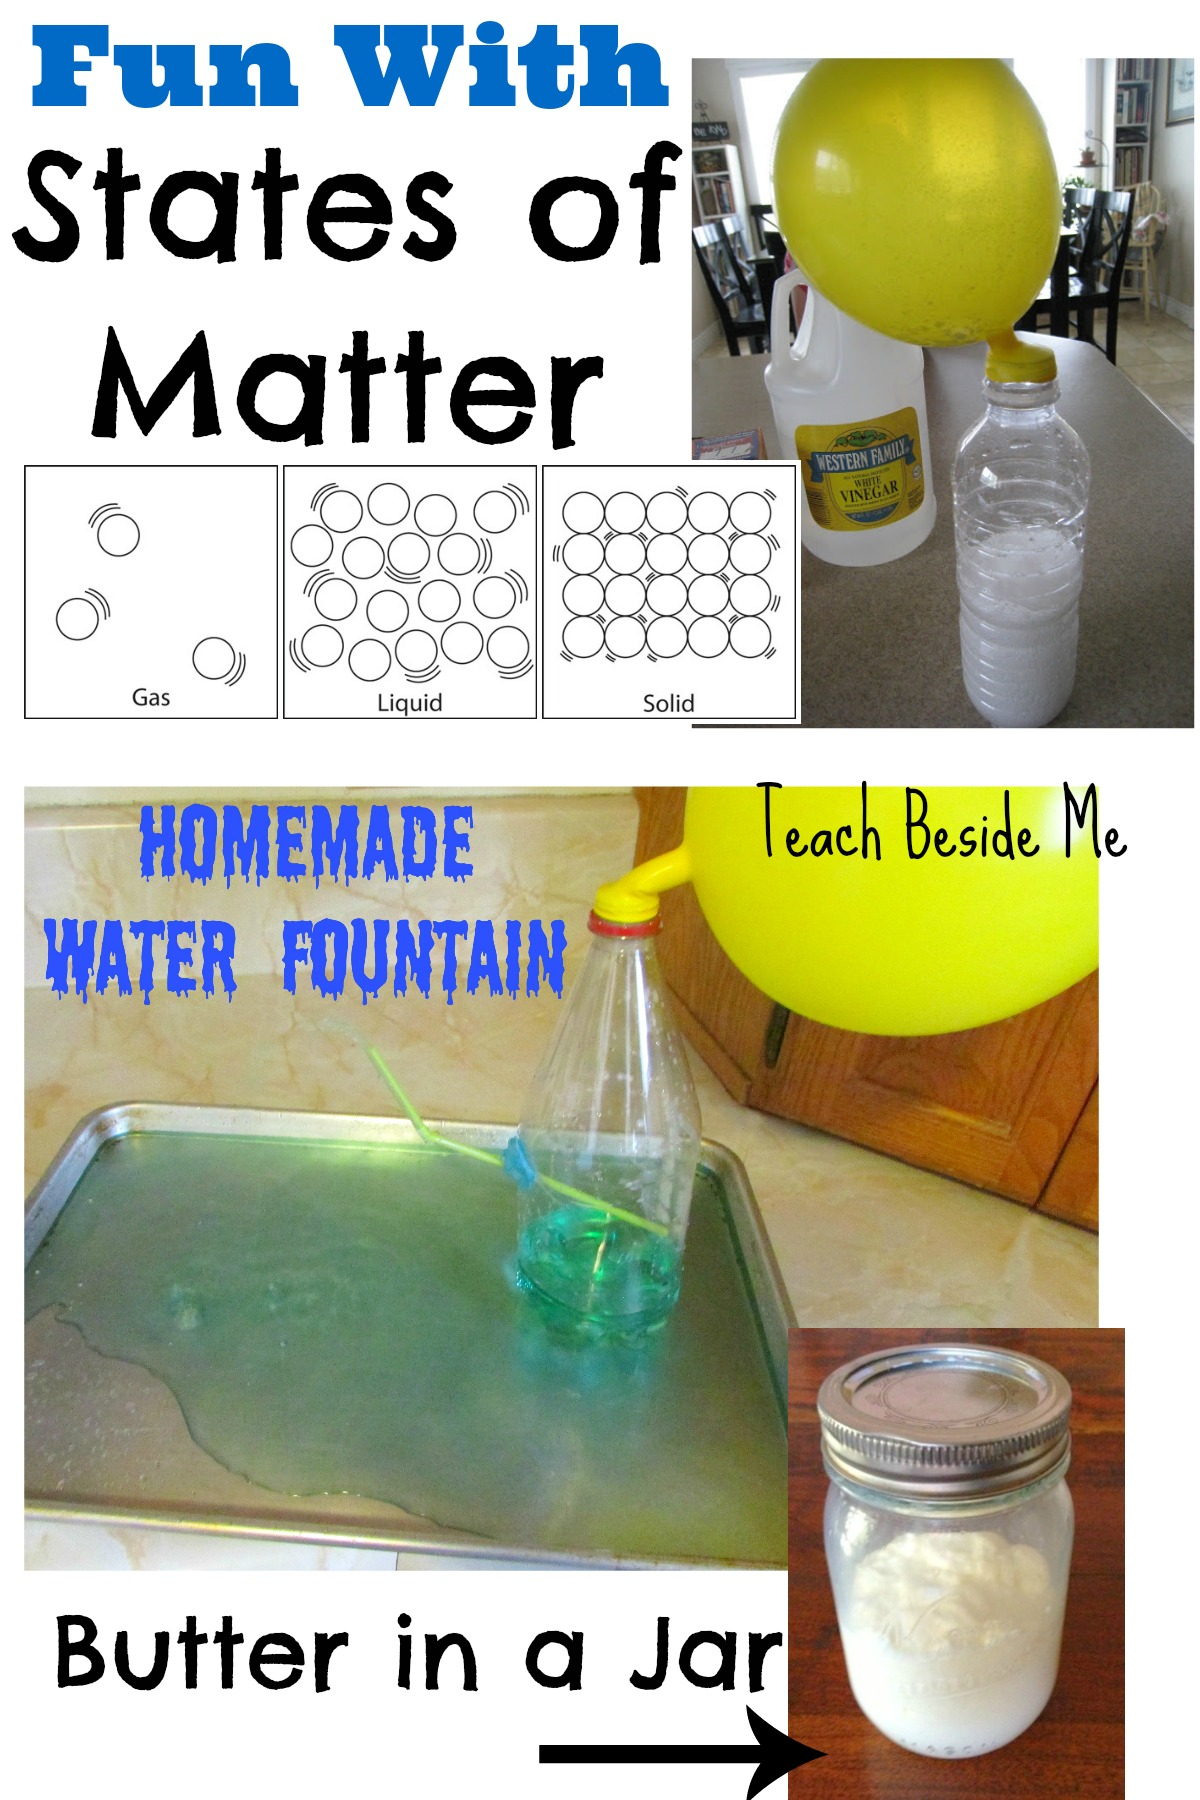 States of Matter ~ Solids, Liquids and Gases